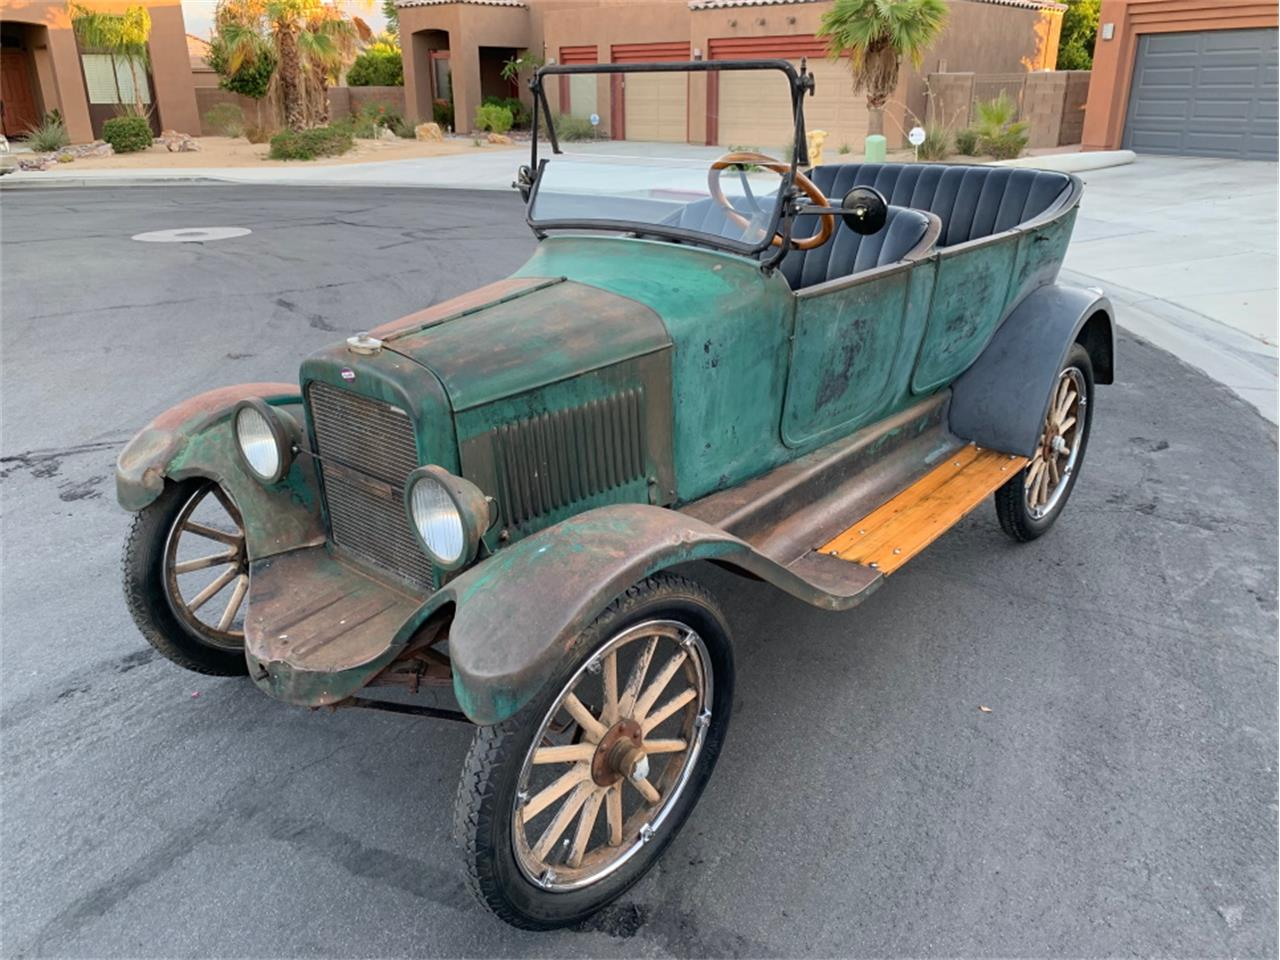 1922 Overland Model 4 Touring (CC-1238690) for sale in Indian Wells, California